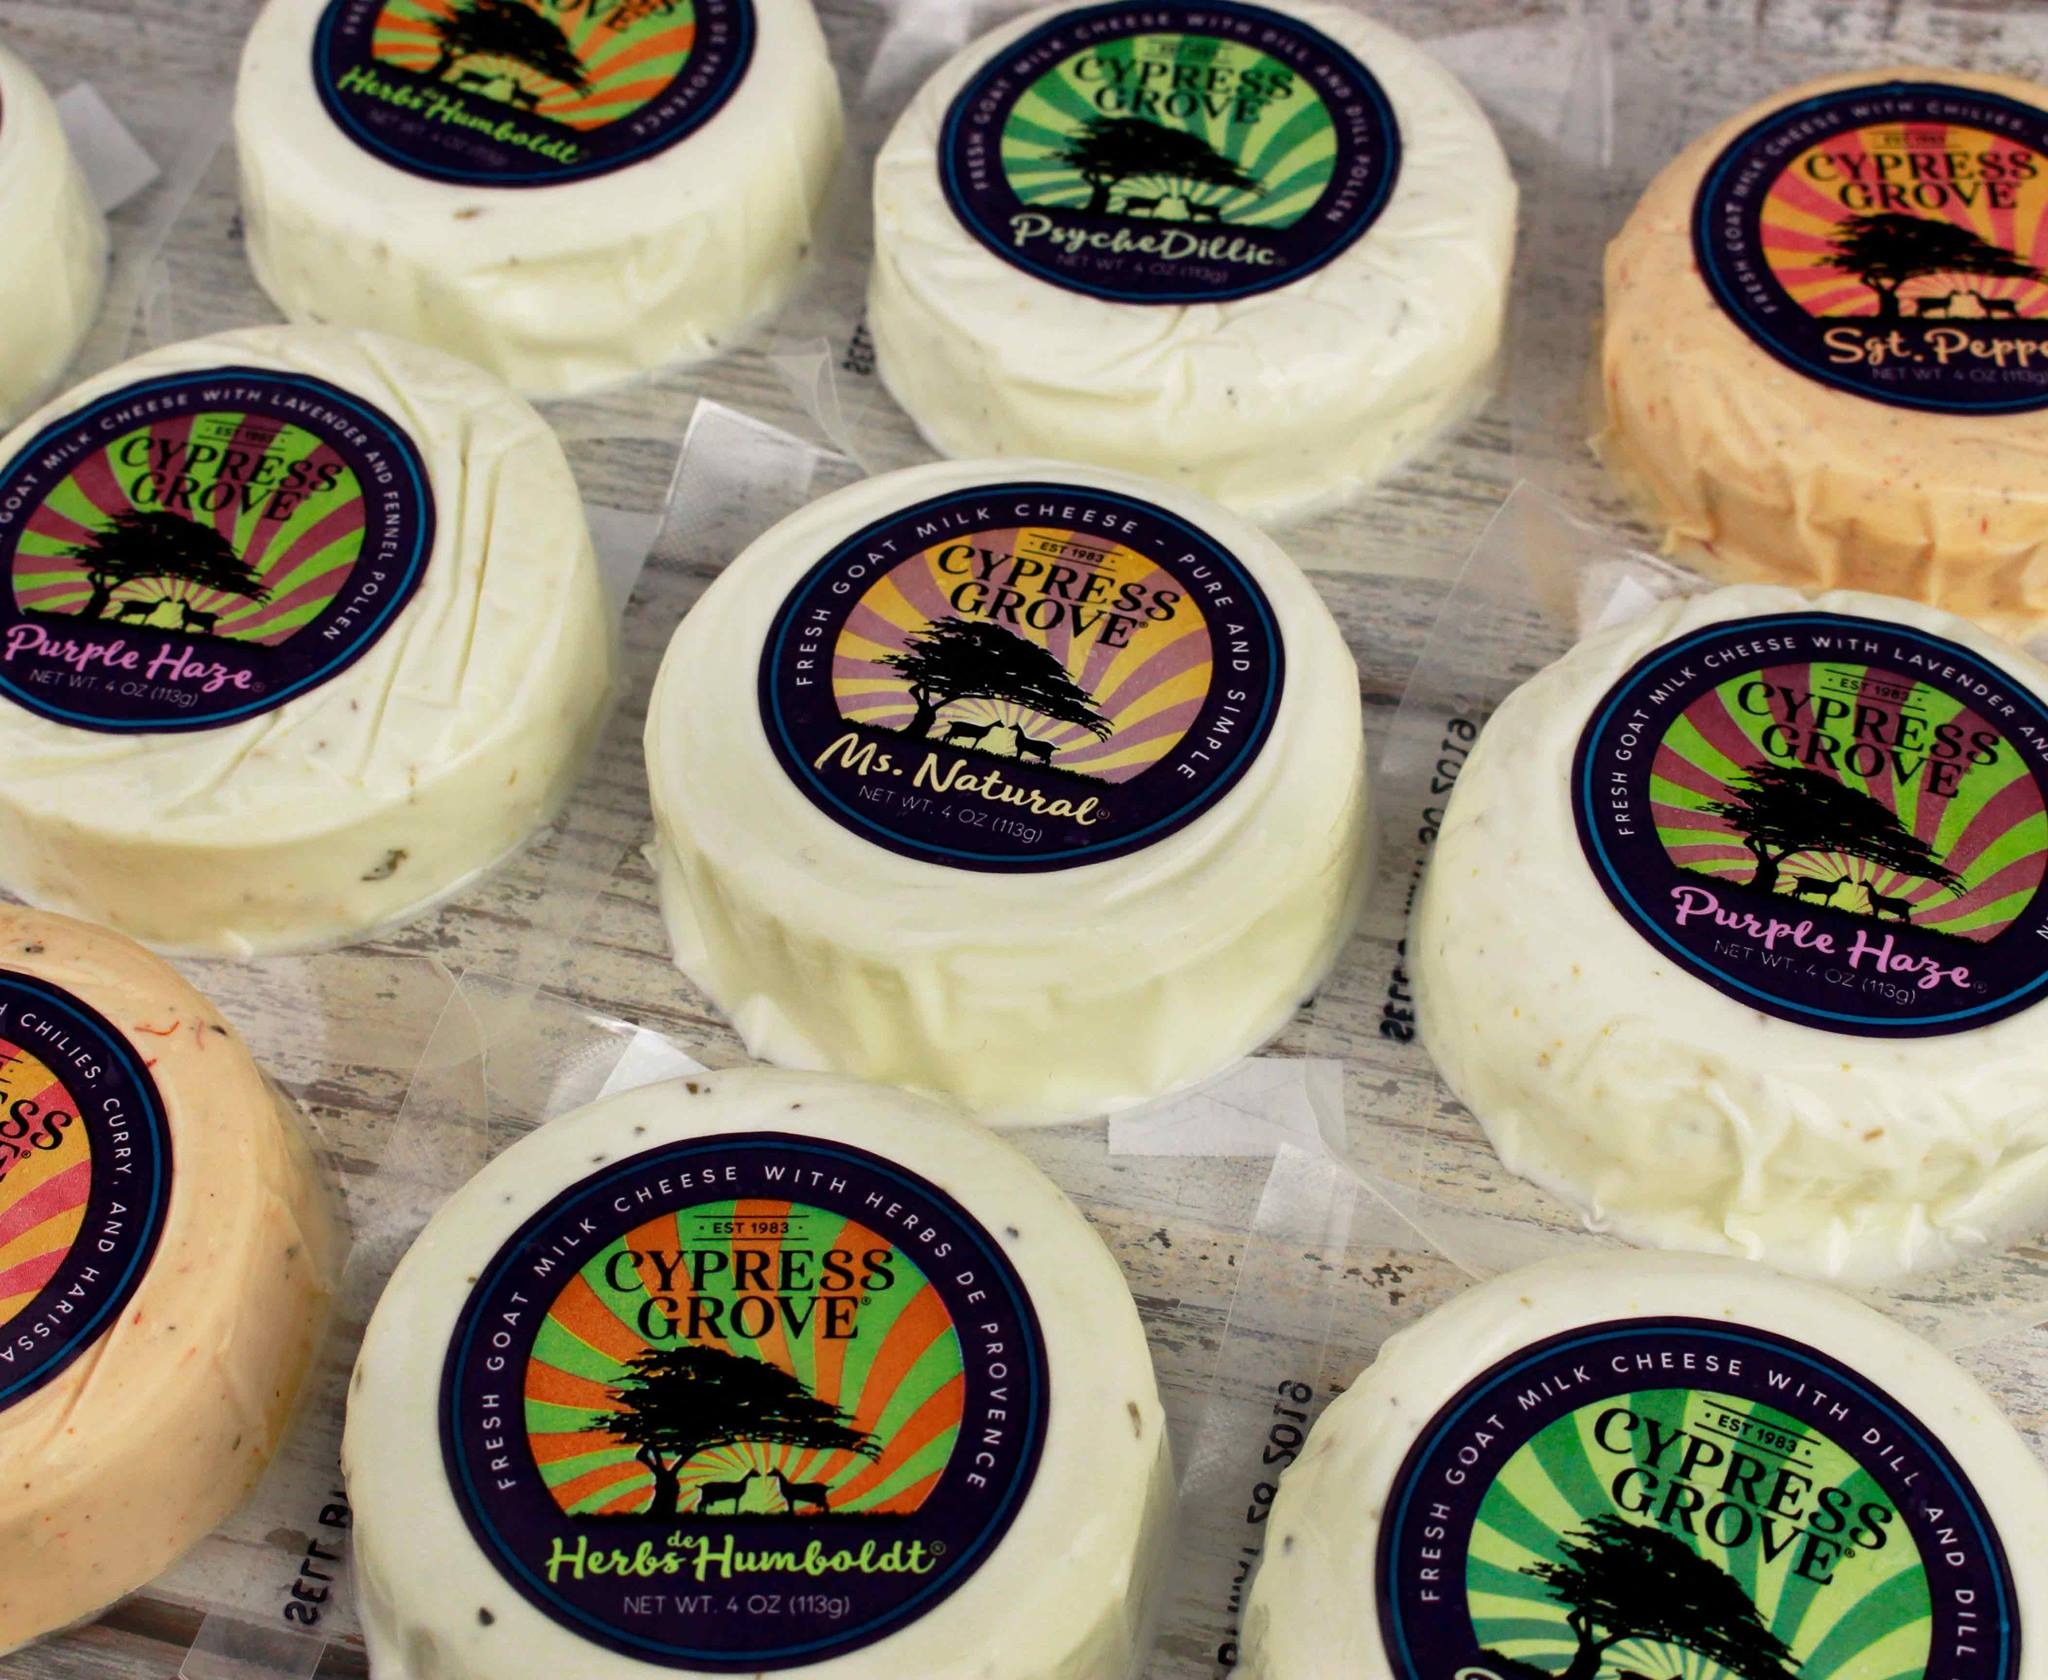 Cypress grove Cheeses Farm Fresh to You.jpg